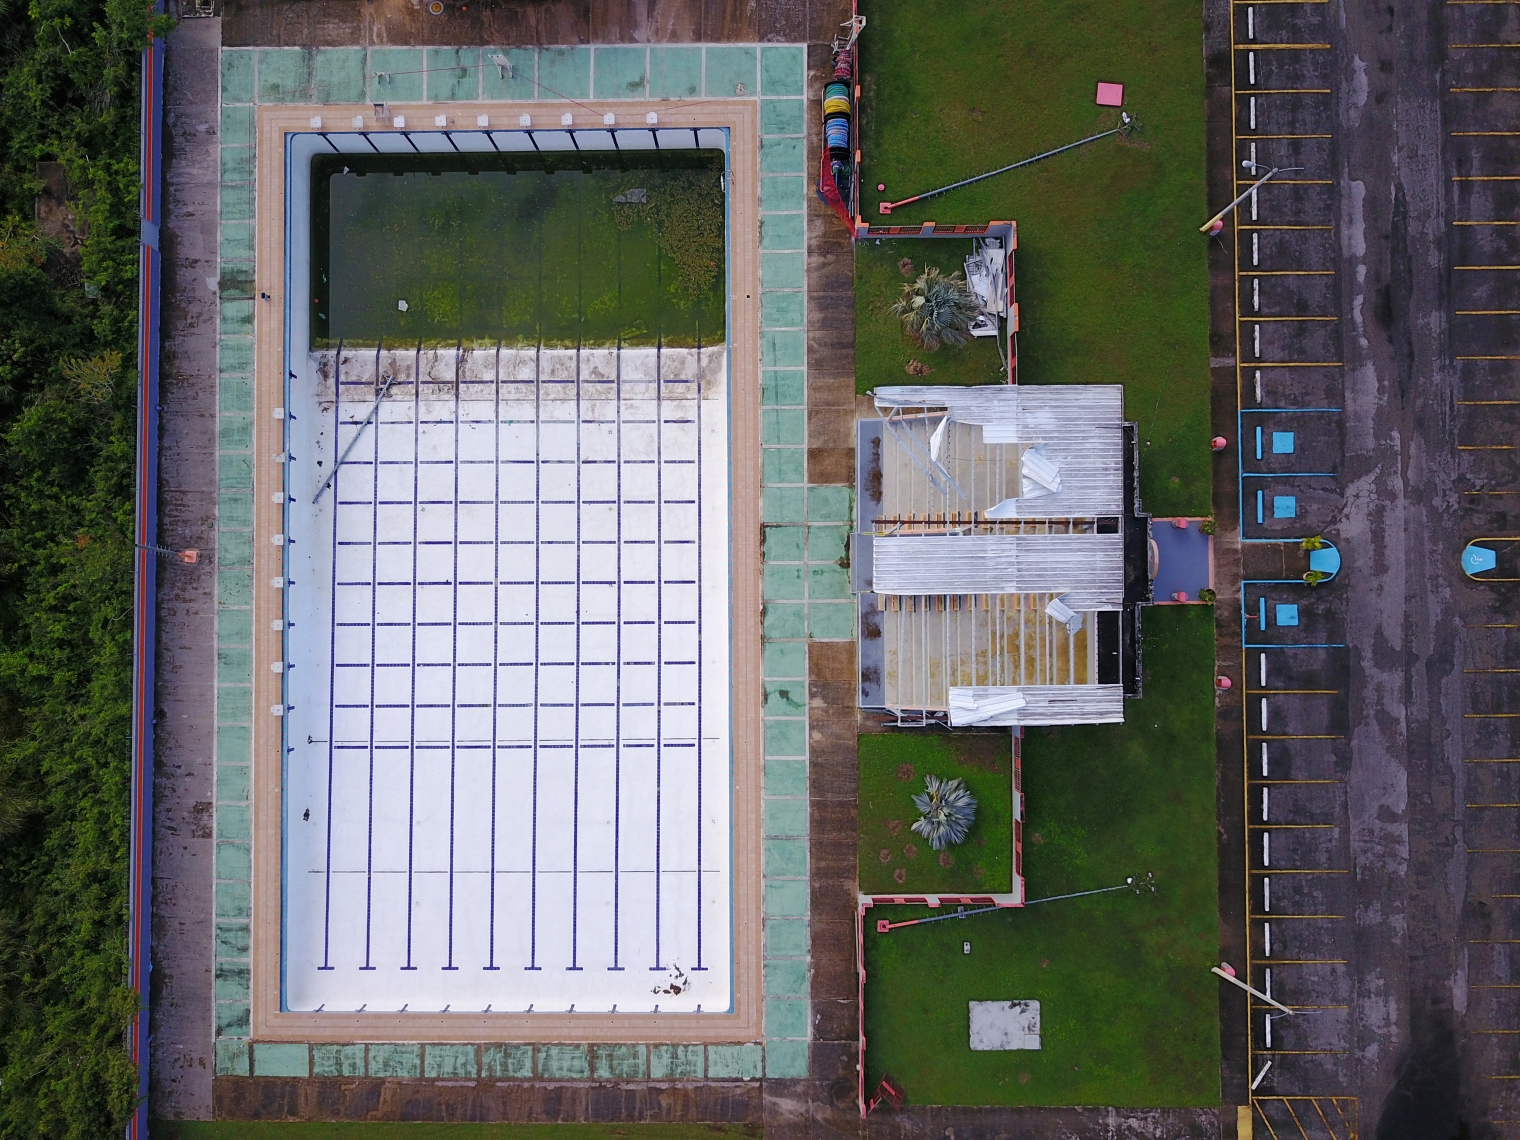 A pool is left in disrepair at a sports facility in Vega Baja